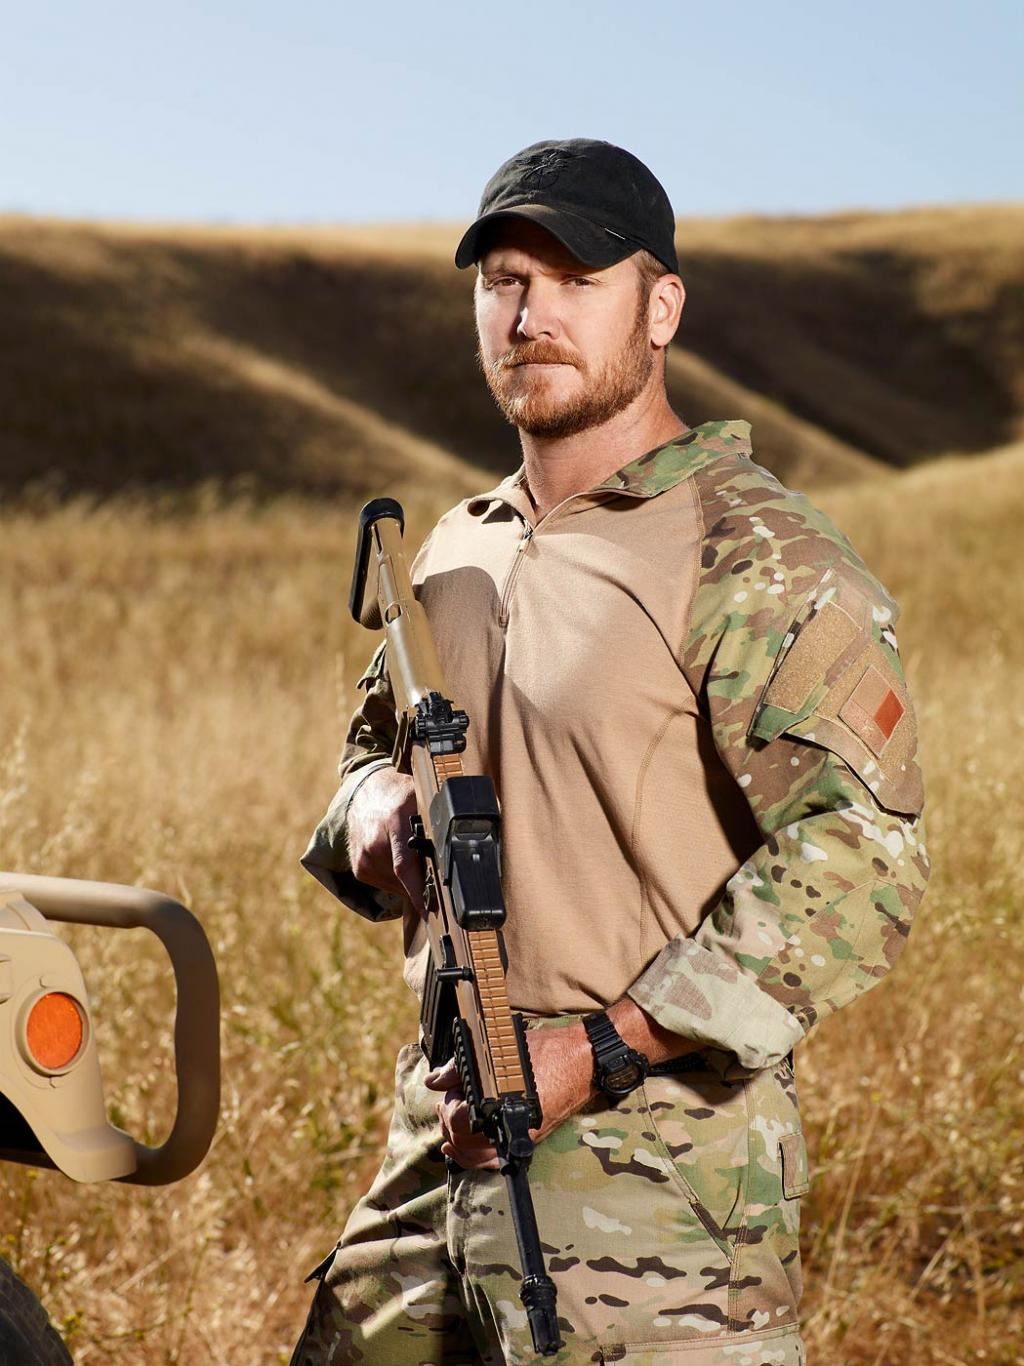 Read The Full Interview With American Sniper Chris Kyle That Didn't